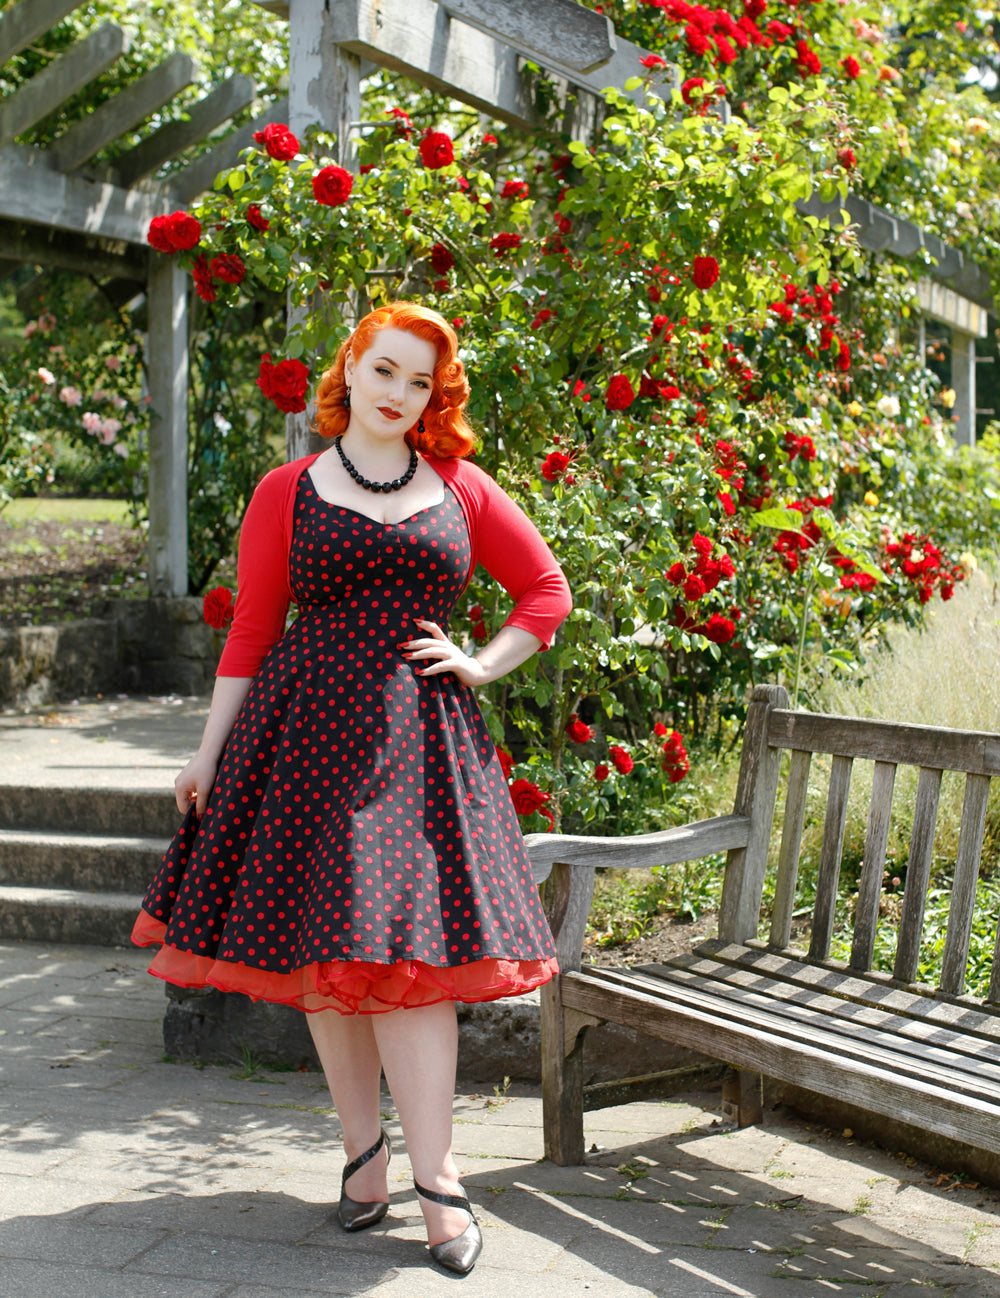 Doris dress in Black and Red polka dot on Kristen